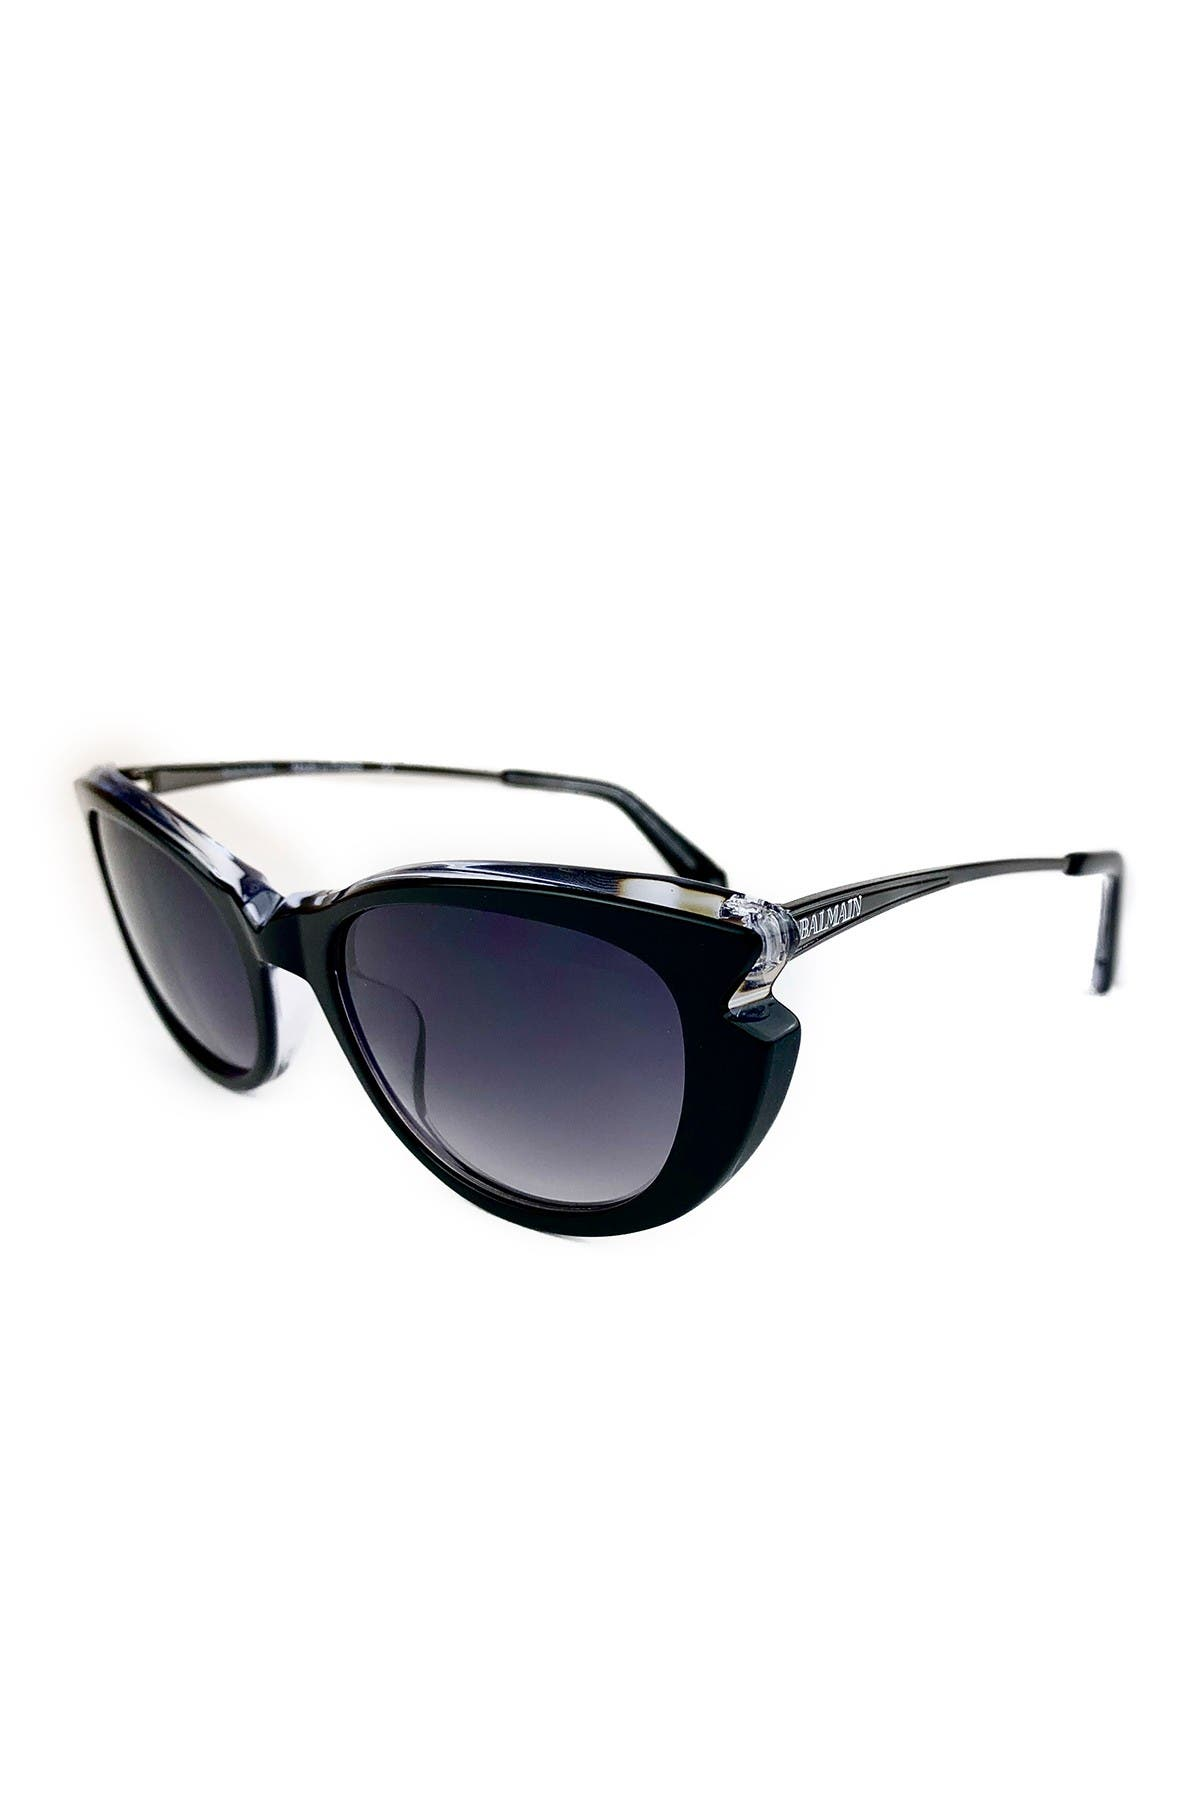 Image of Balmain 53mm Modified Butterfly Sunglasses